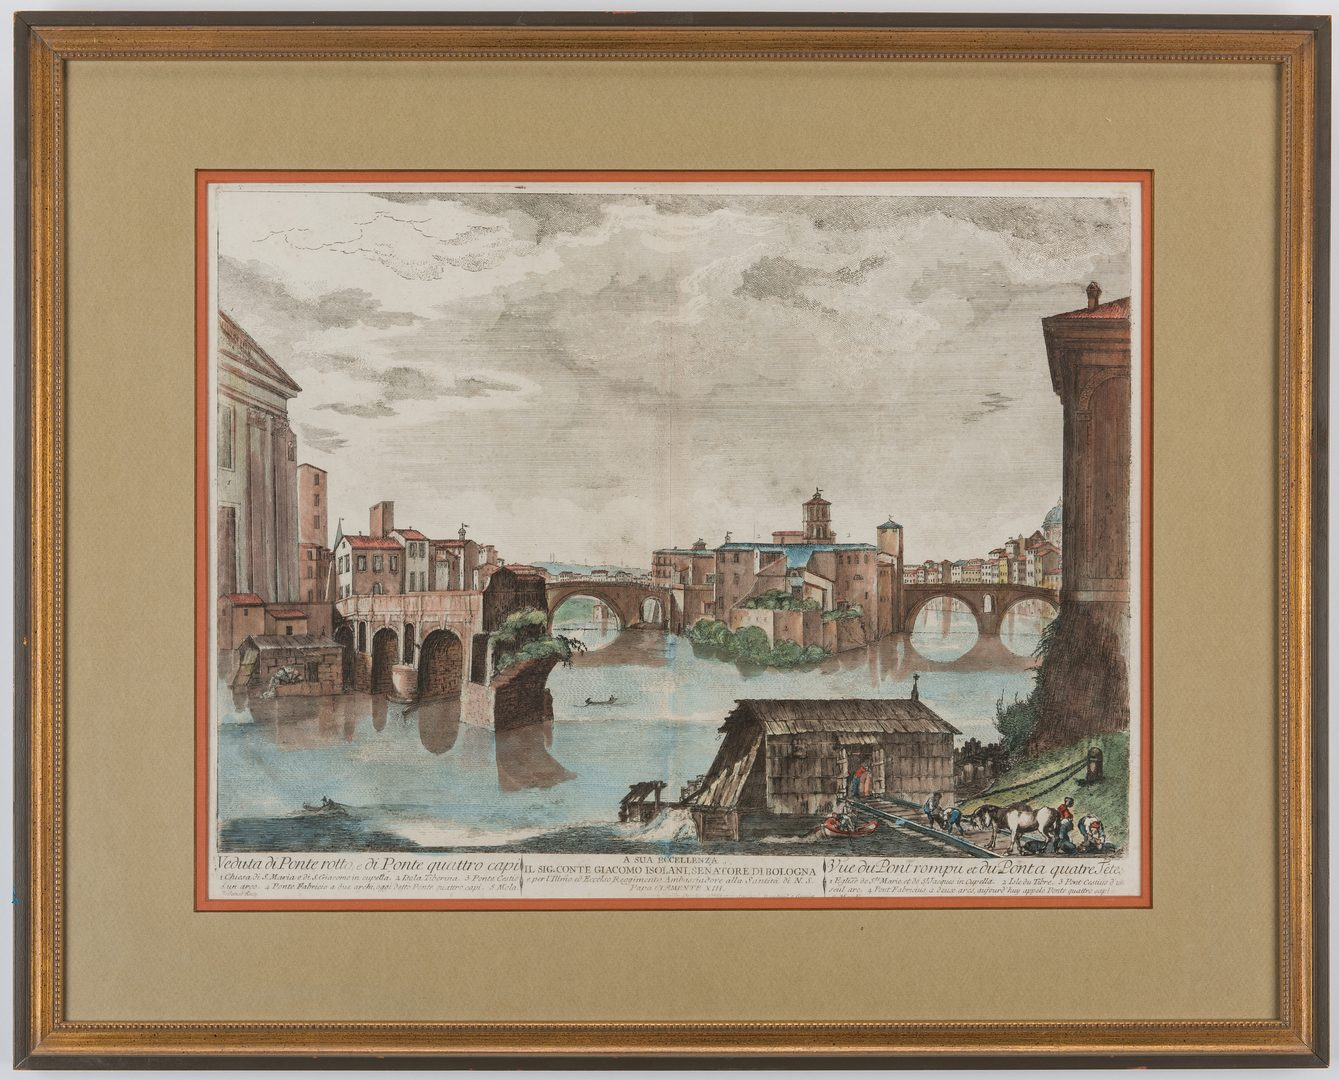 Lot 160: Set 4 Engravings, 18th c. Italian Scenes